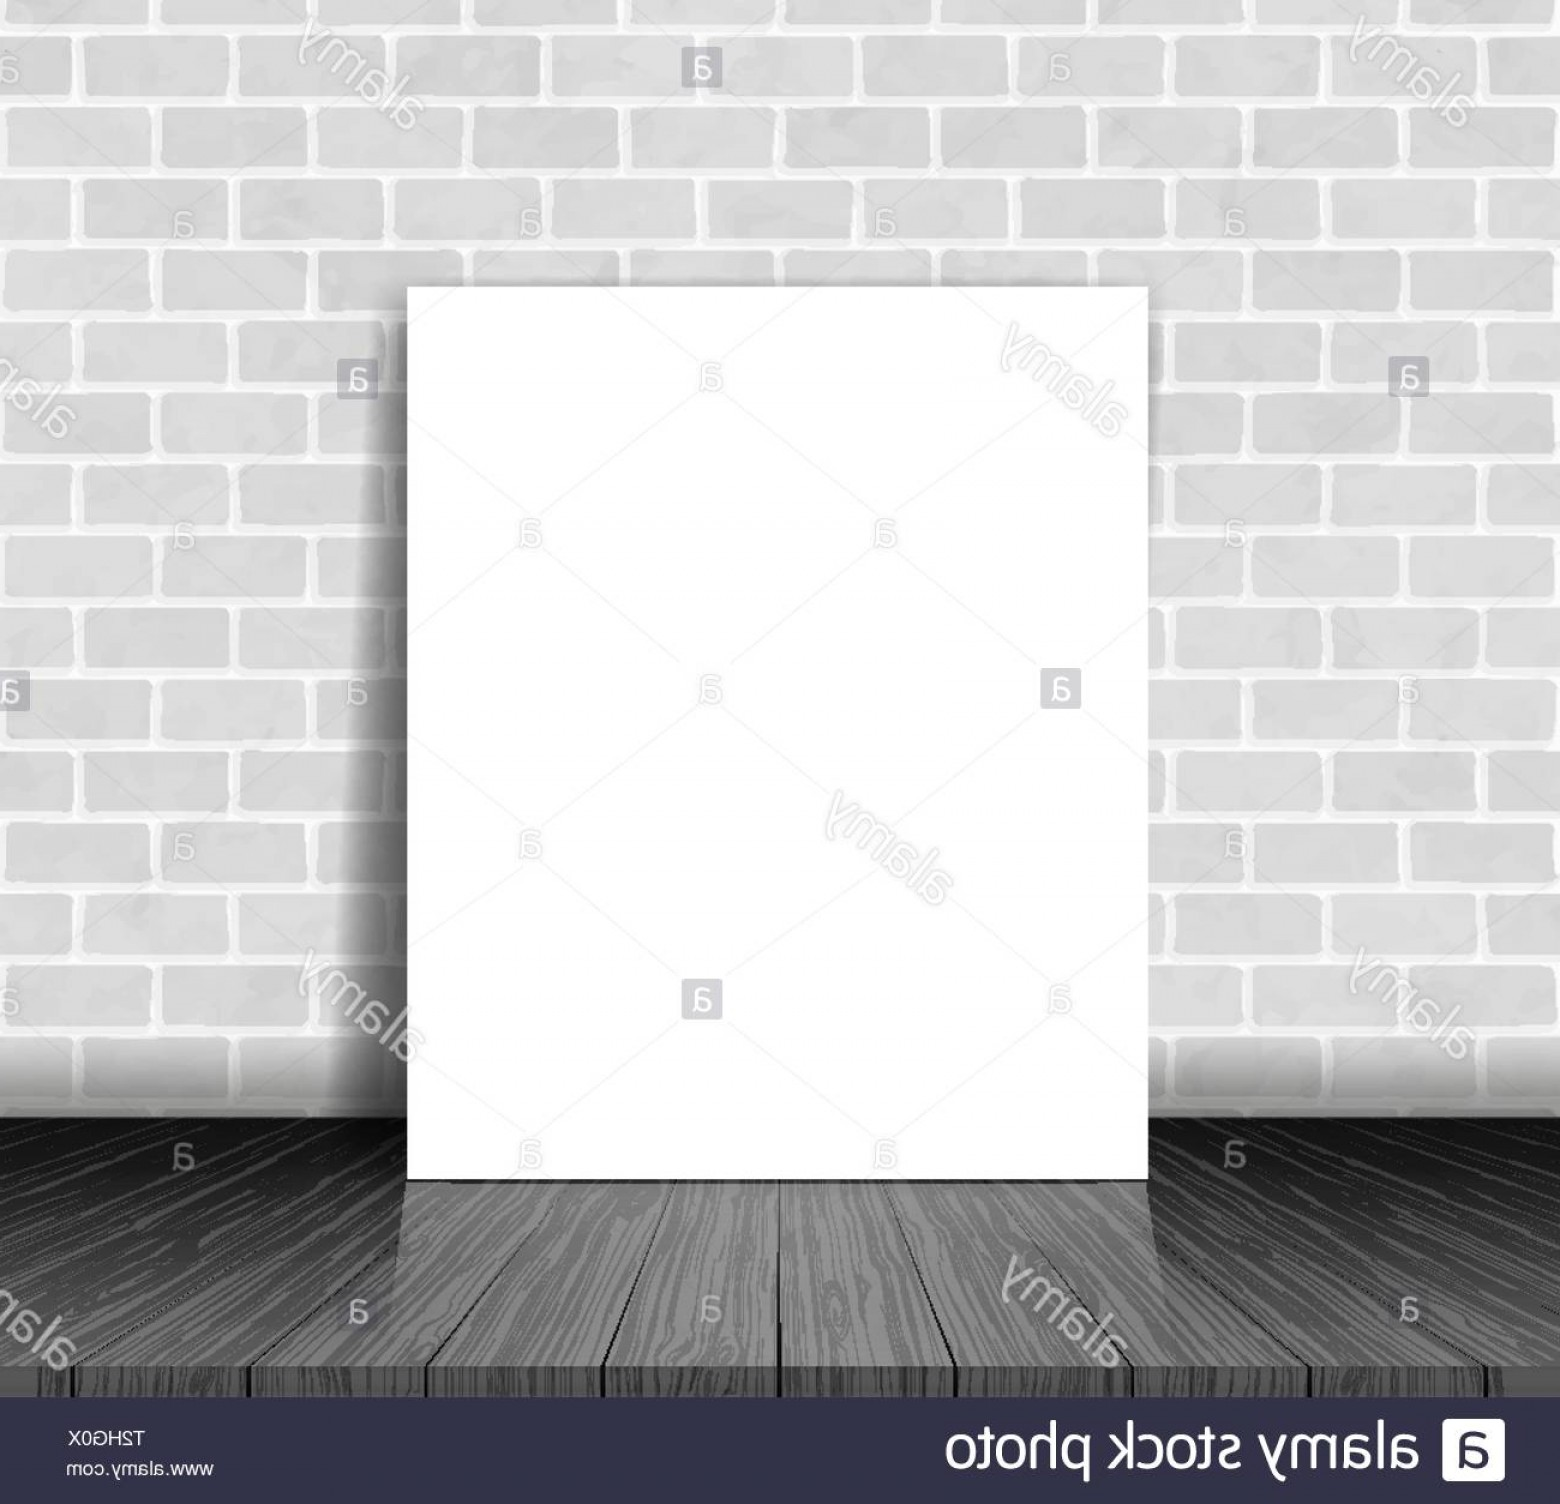 Vector Black Wood Floor: Brick Wall With White Paper Sheet On Wood Floor Vector Image